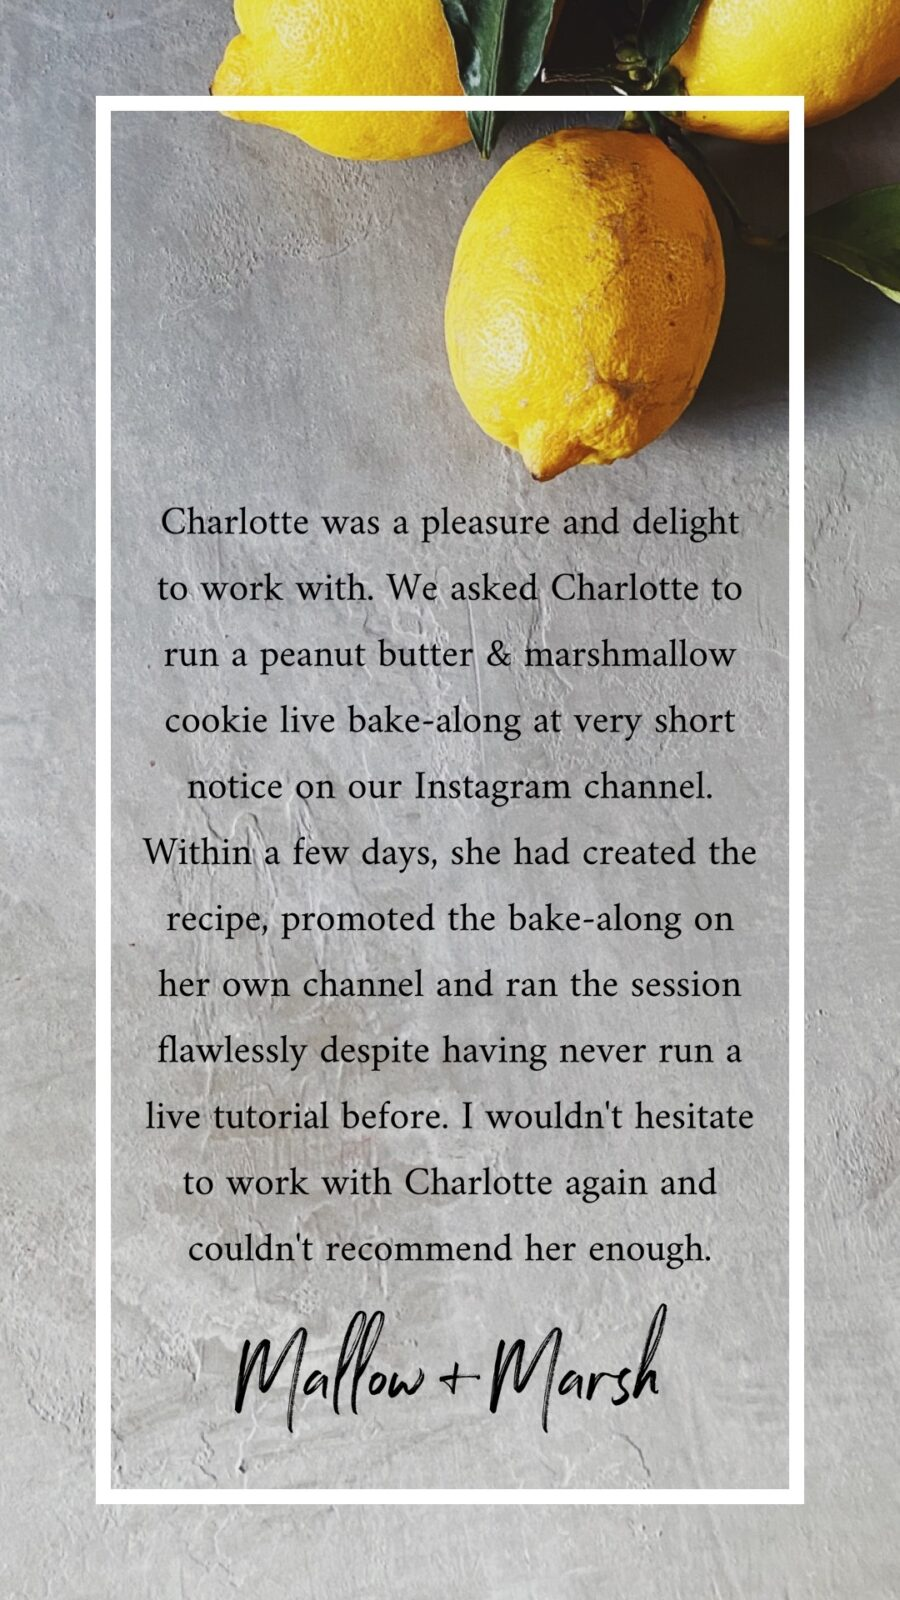 Charlotte was a pleasure and delight to work with. We asked Charlotte to run a peanut butter & marshmallow cookie live bake-along at very short notice on our Instagram channel. Within a few days, she had created the recipe, promoted the bake-along on her own channel and ran the session flawlessly despite having never run a live tutorial before. I wouldn't hesitate to work with Charlotte again and couldn't recommend her enough.